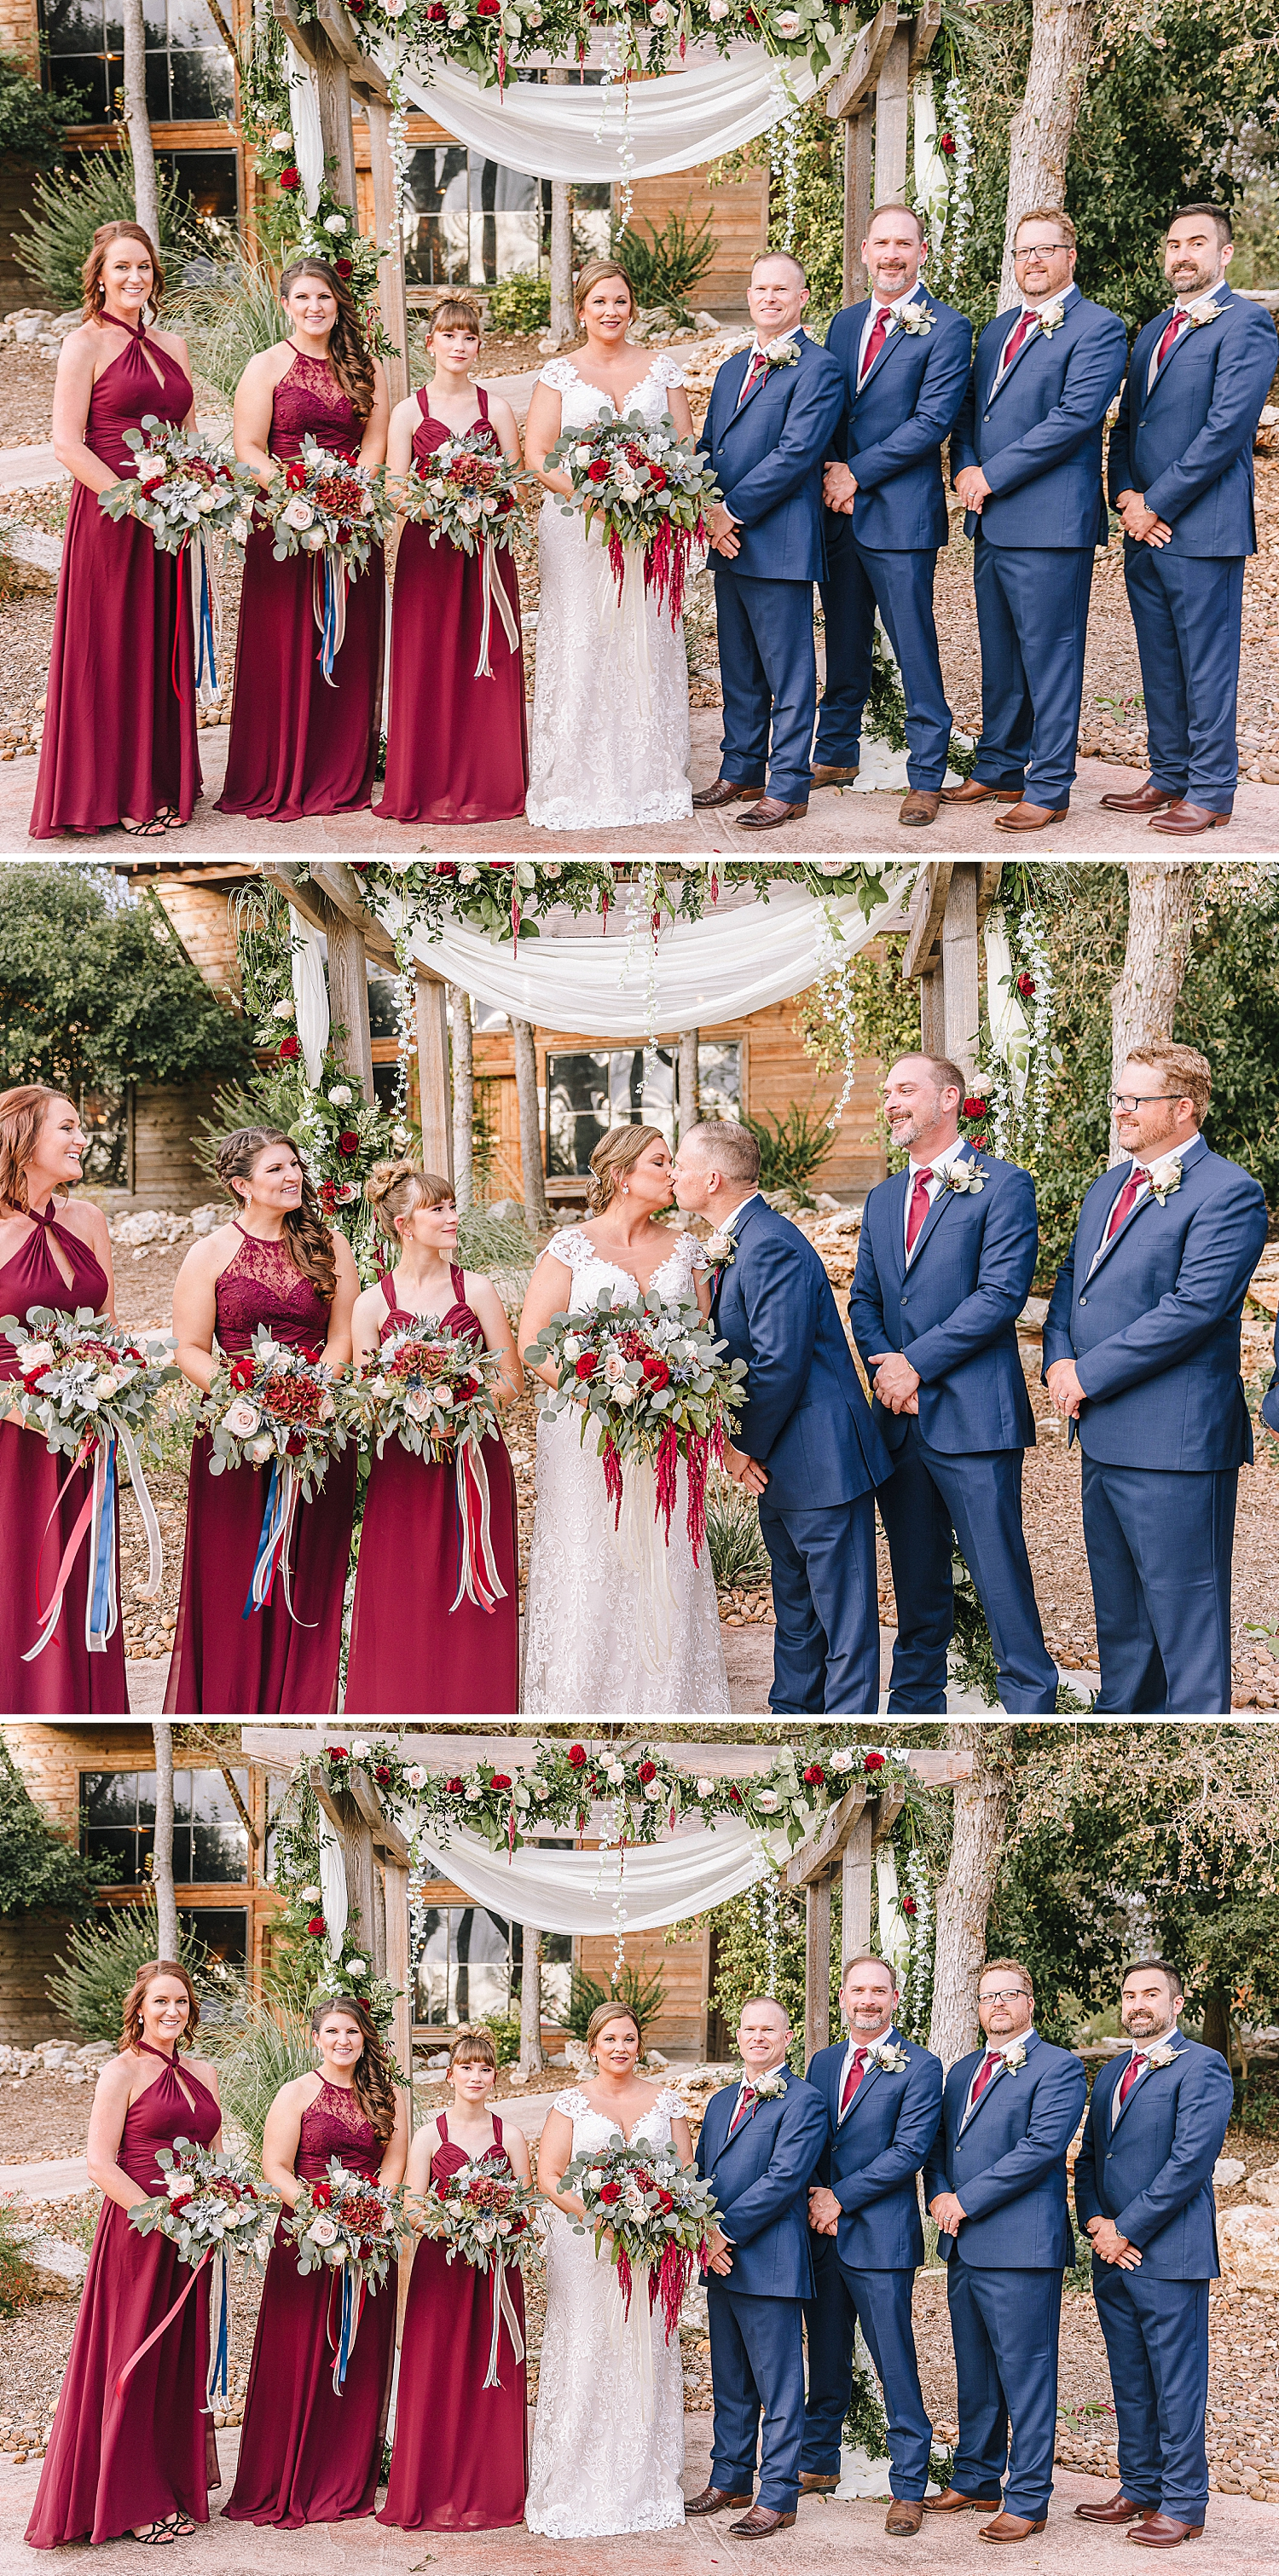 Geronimo-Oaks-Wedding-Venue-Seguin-Texas-Elegant-Navy-Burgundy-Wedding-Carly-Barton-Photography_0043.jpg